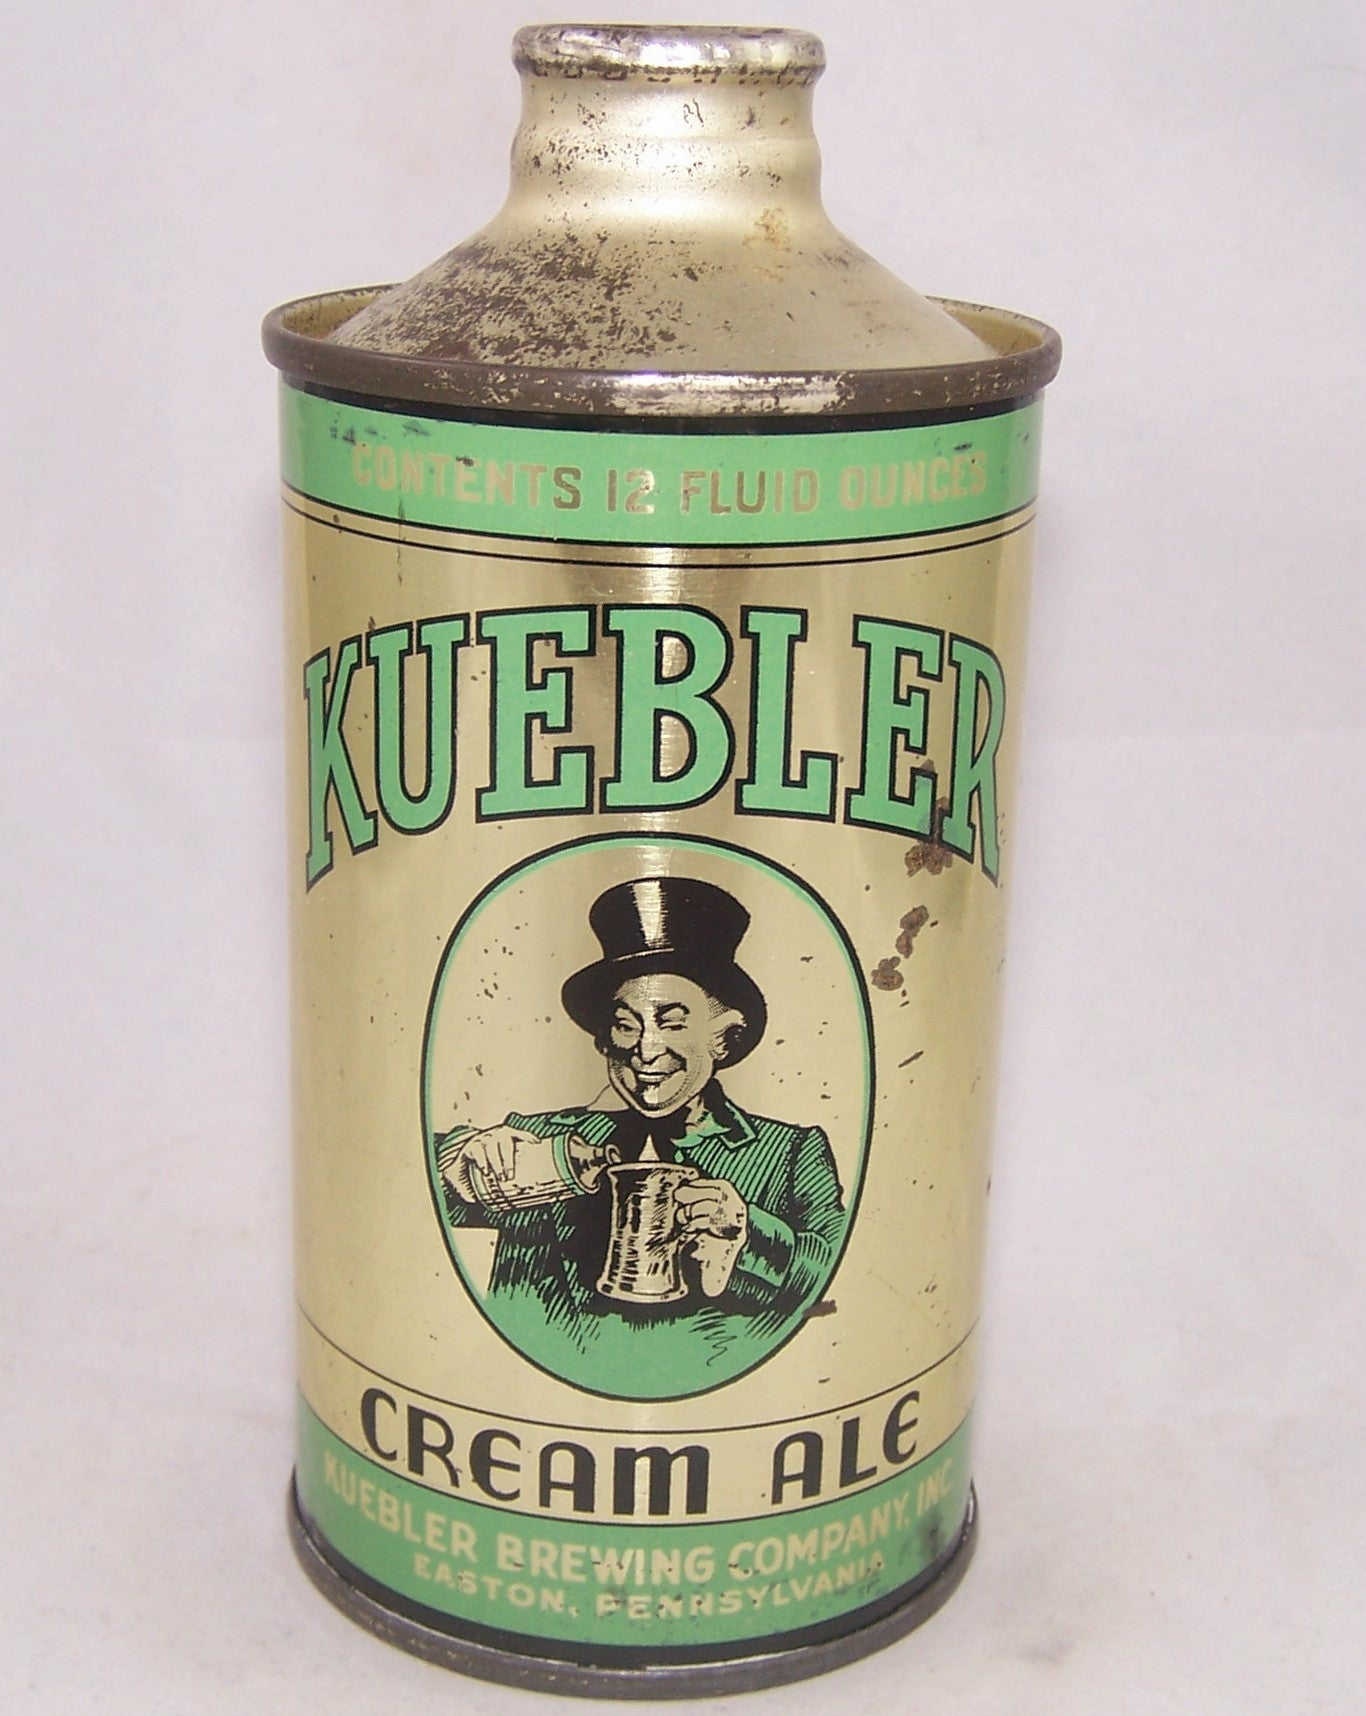 Kuebler Cream Ale, USBC 172-14, Grade 1/1- Sold on 03/05/17